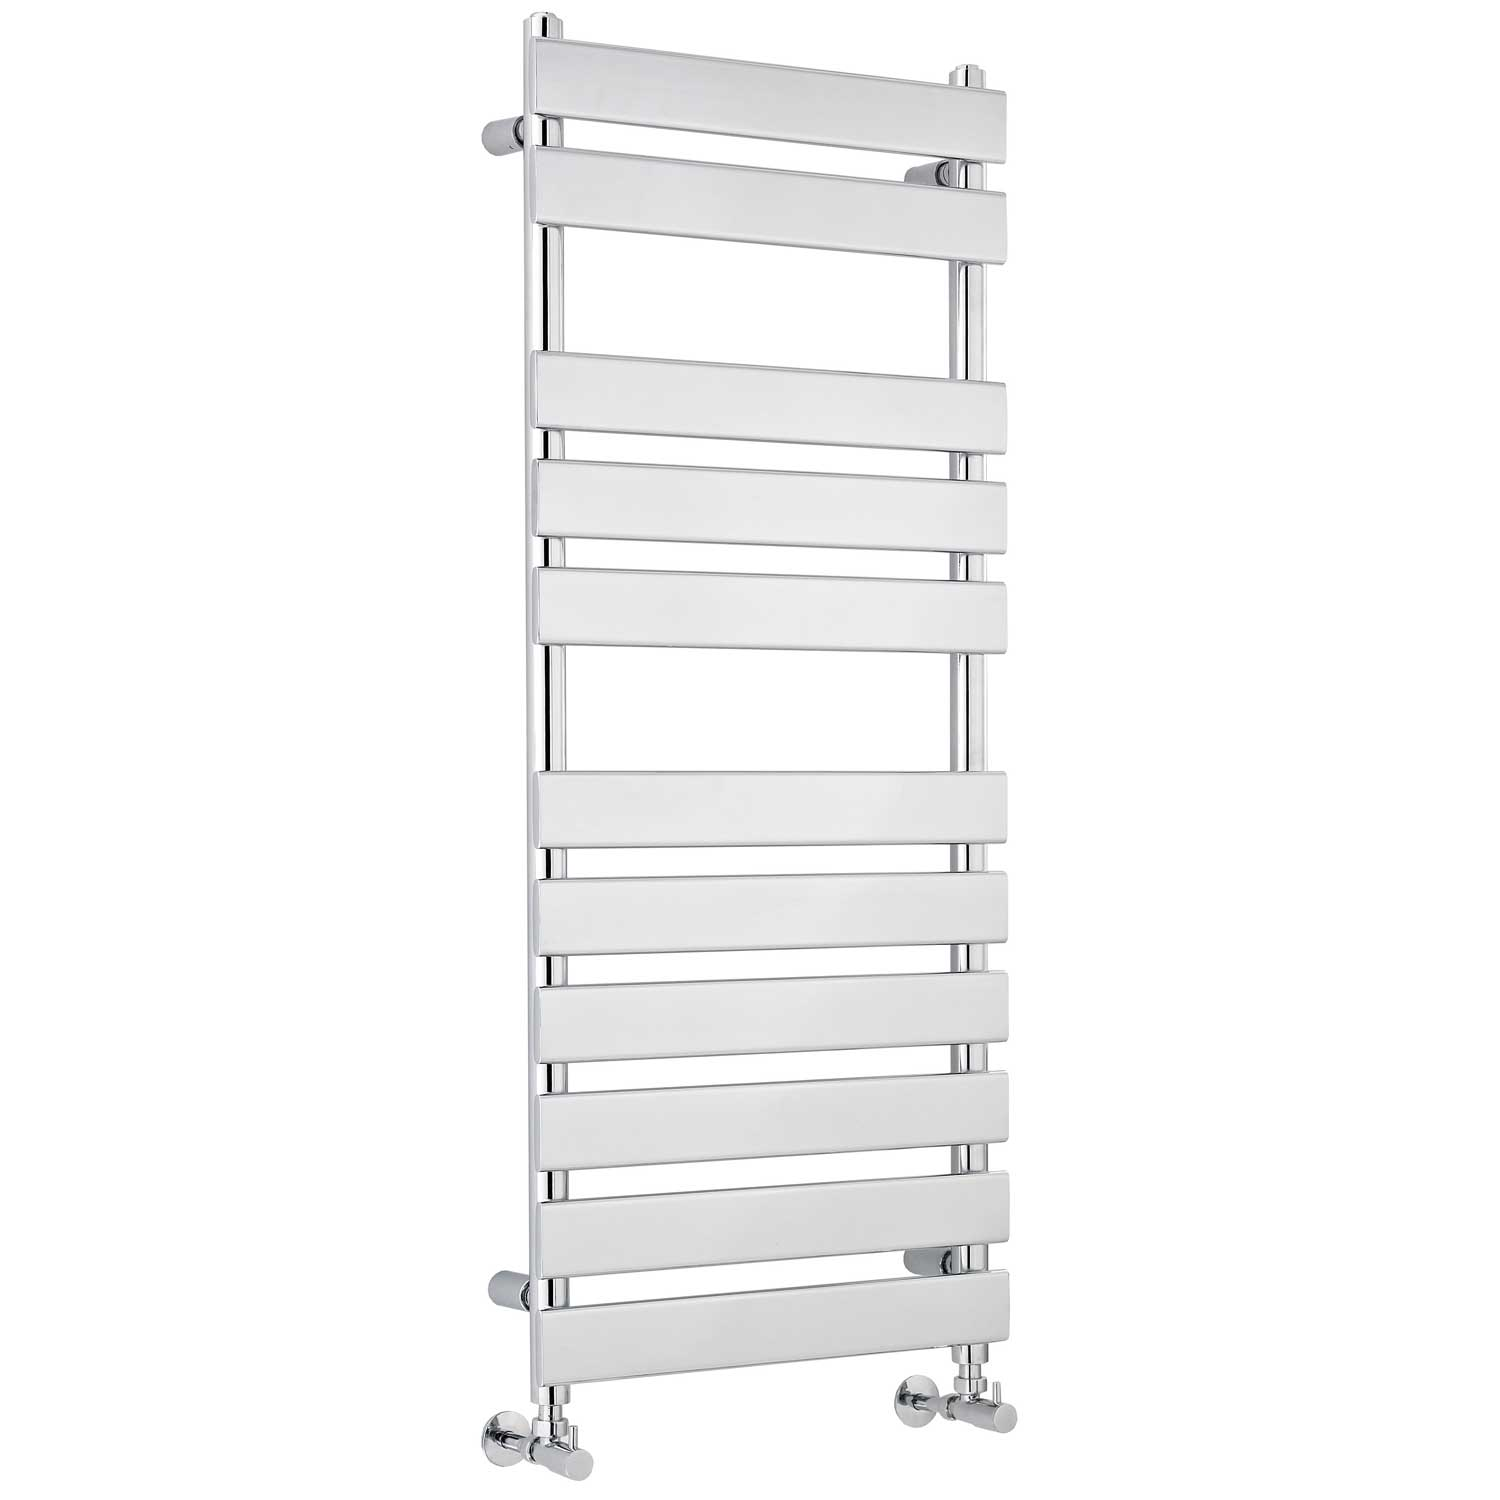 Hudson Reed Piazza Flat Panel Heated Towel Rail 1200mm H x 500mm W Chrome